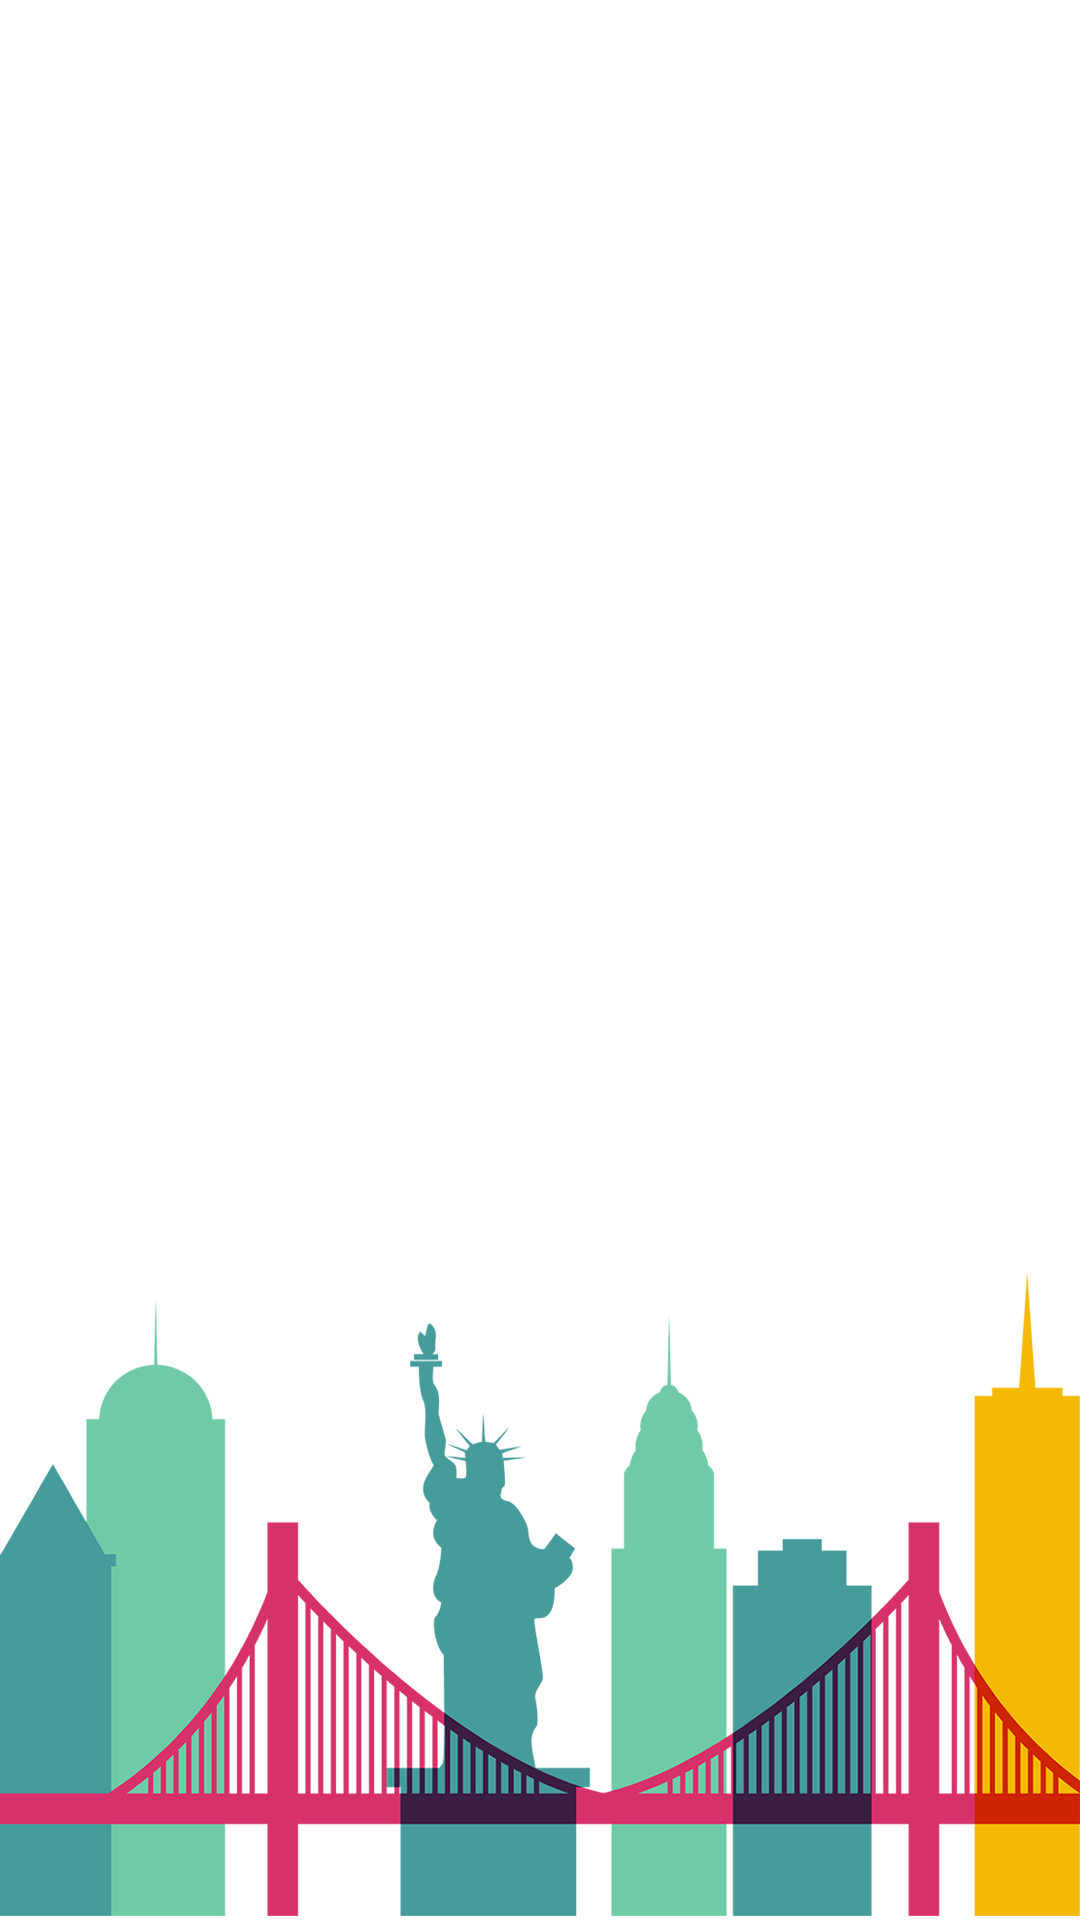 Los angeles geofilter clipart download New York City Snapchat Filter   Geofilter Maker on FilterPop download